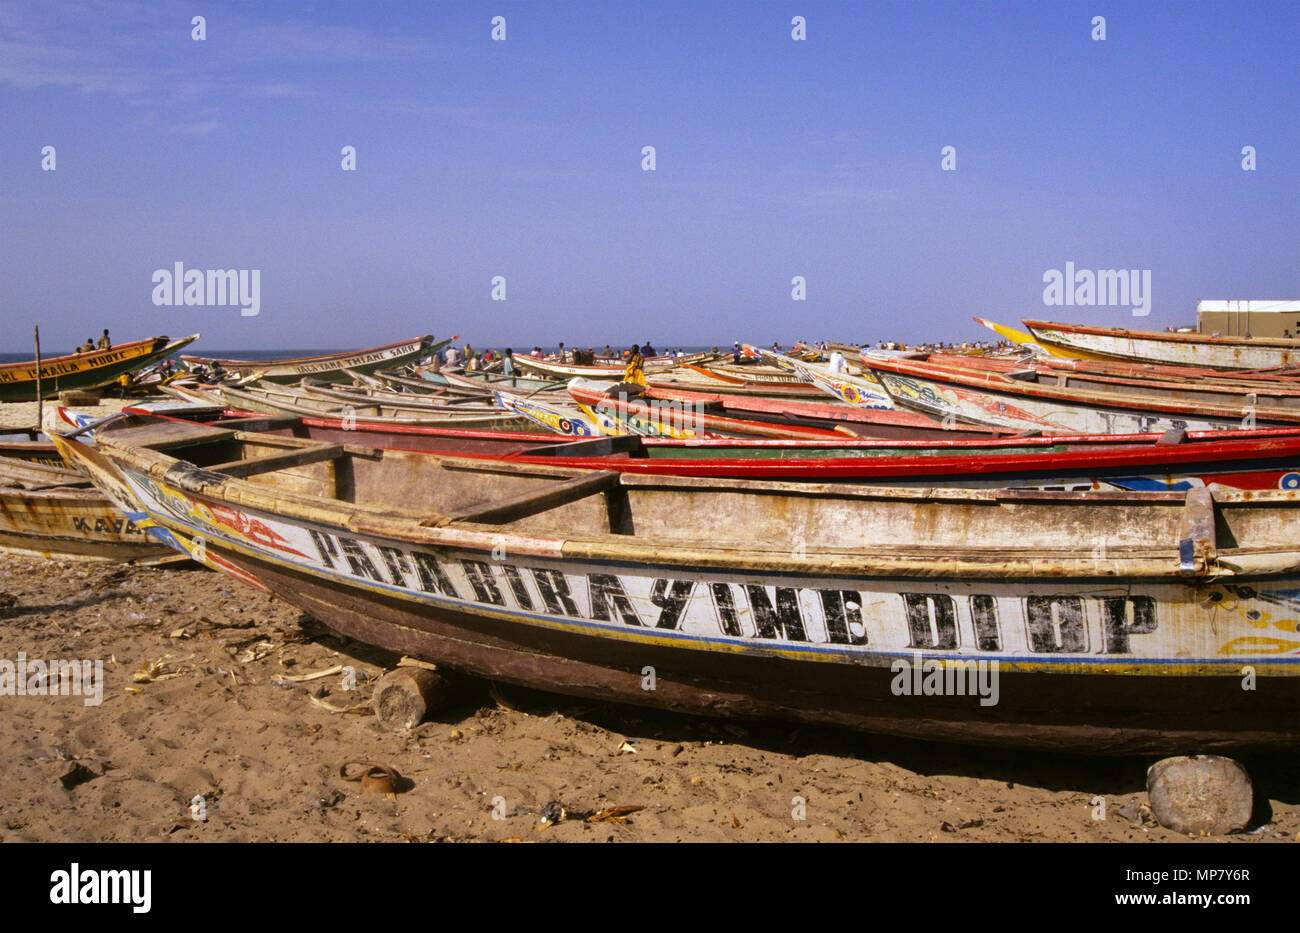 traditional fishing boats on beach, Kayar, Senegal Stock Photo